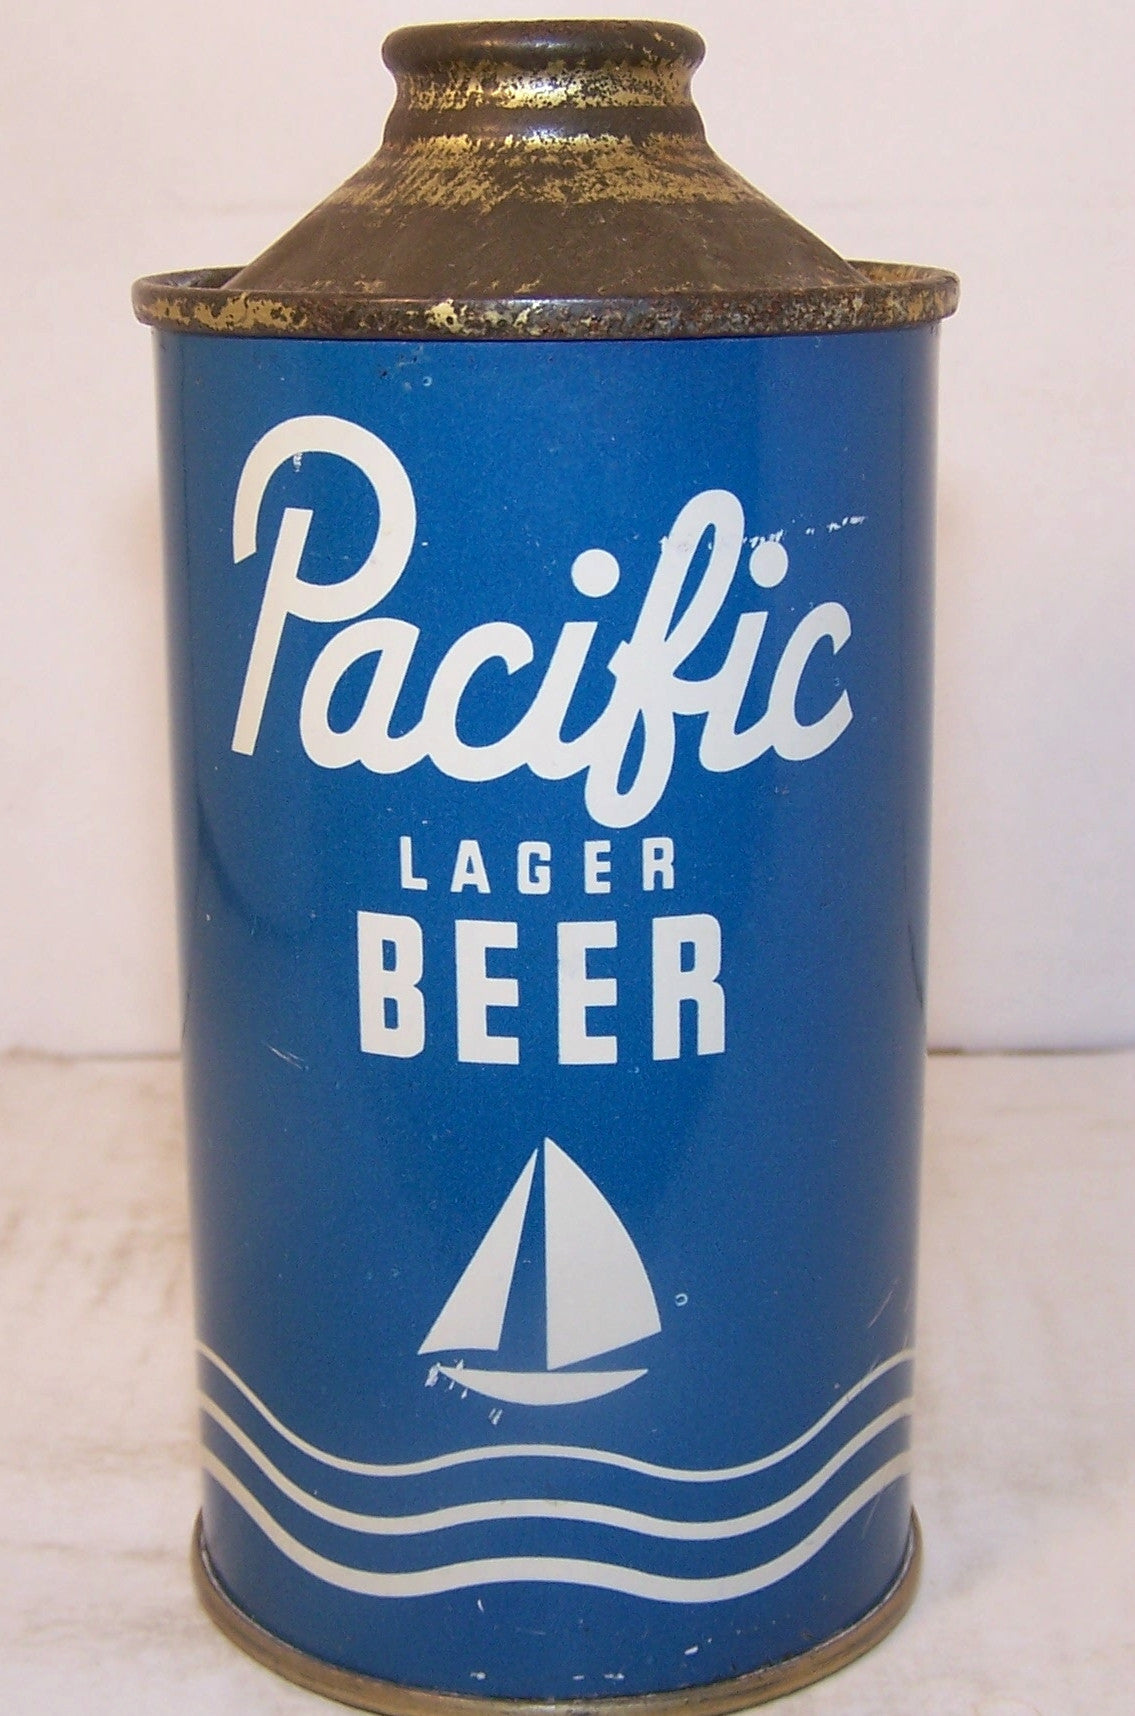 Pacific Lager Beer, USBC 178-29, Grade 1 sold 4/9/16